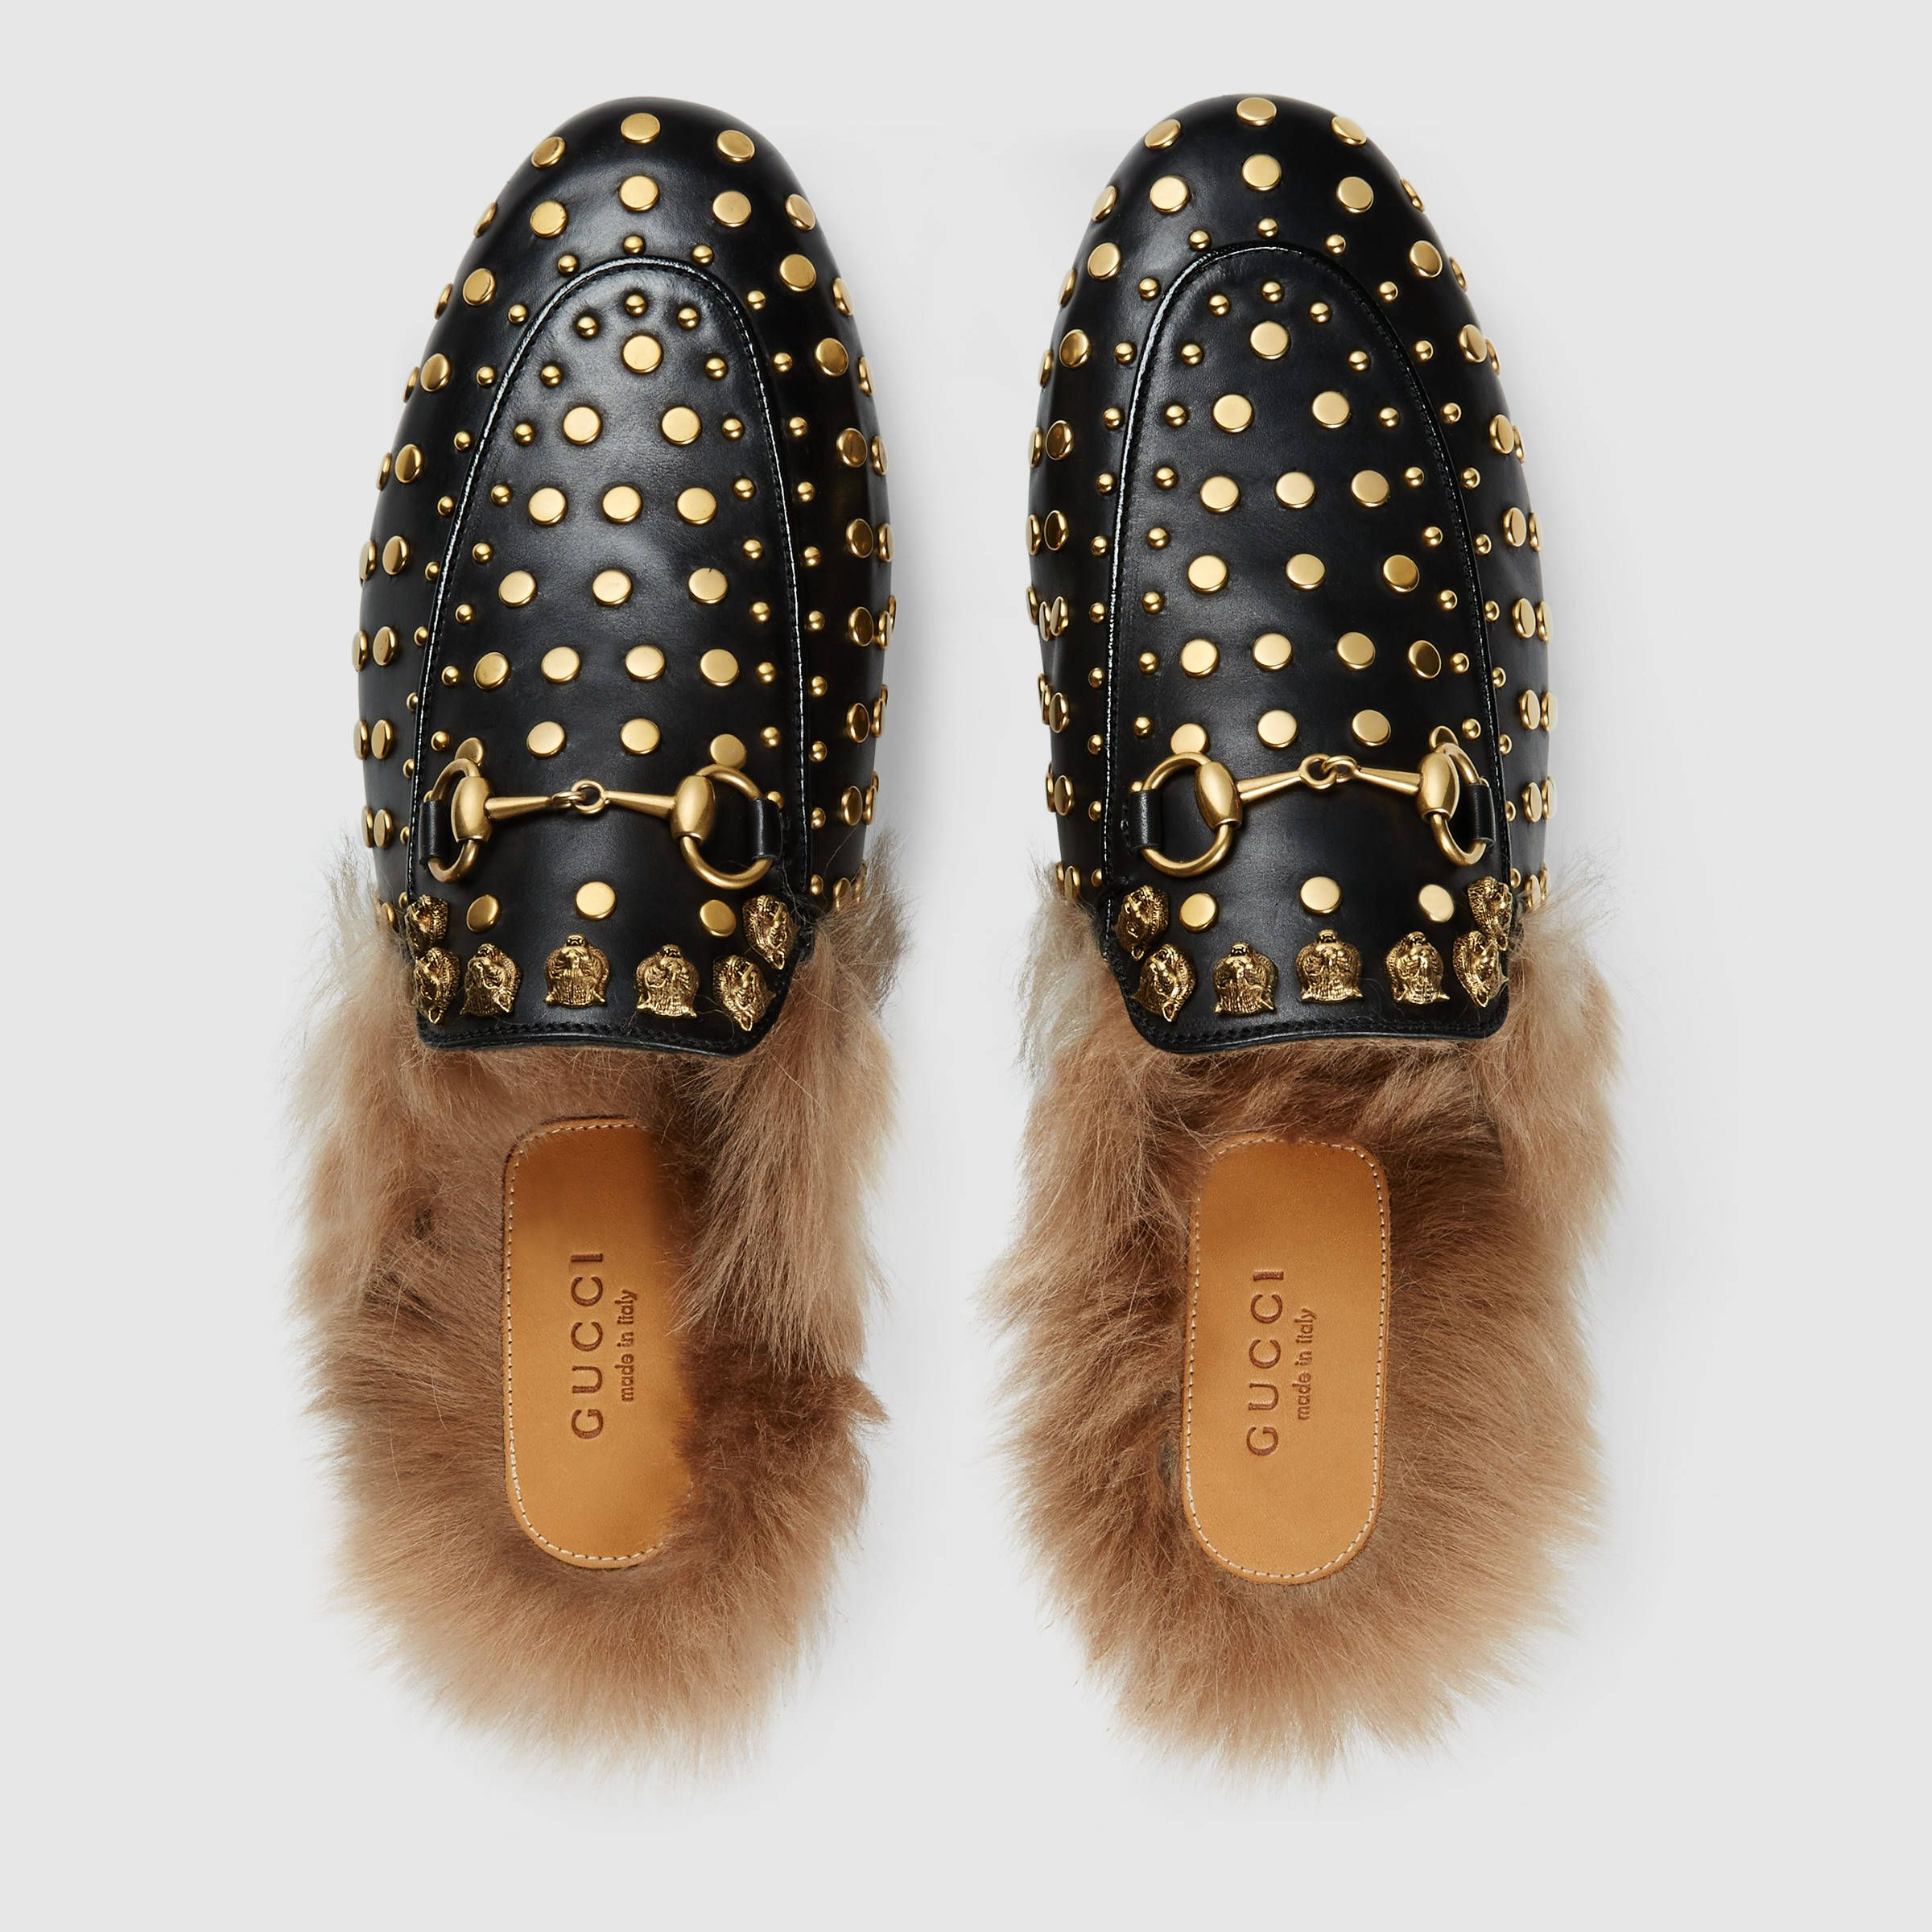 the Gucci loafers. Studs and all.